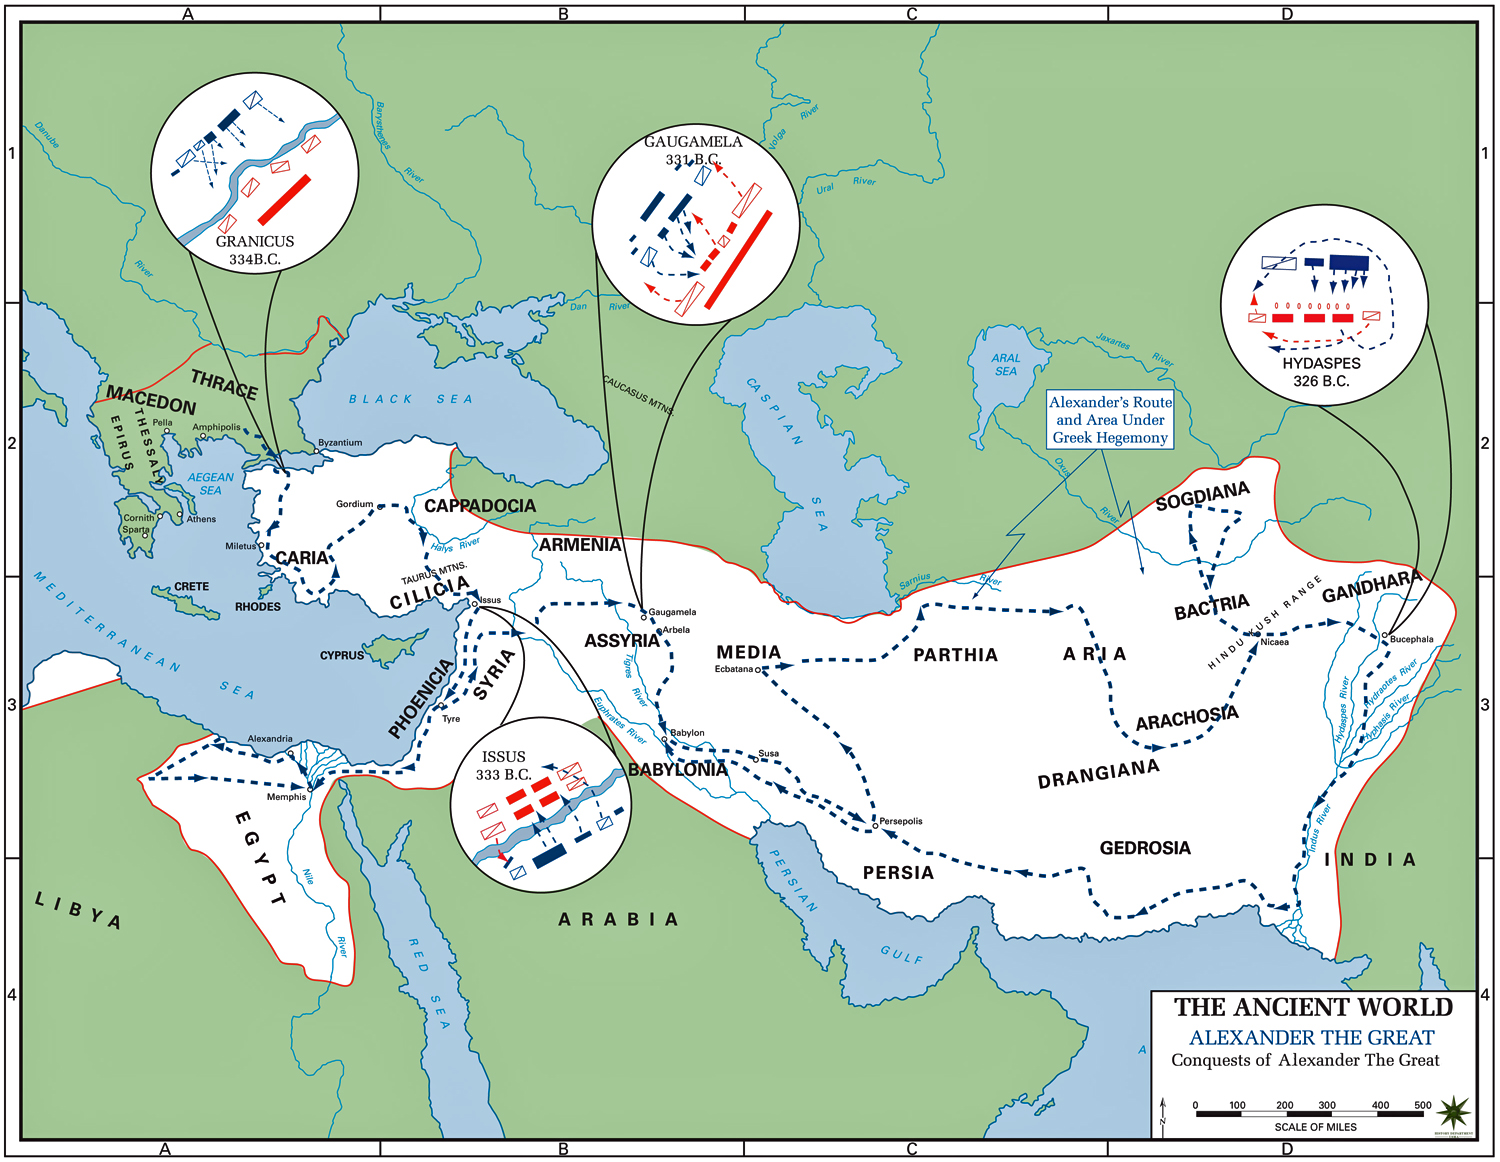 Map of the Conquests of Alexander the Great 336-323 BC